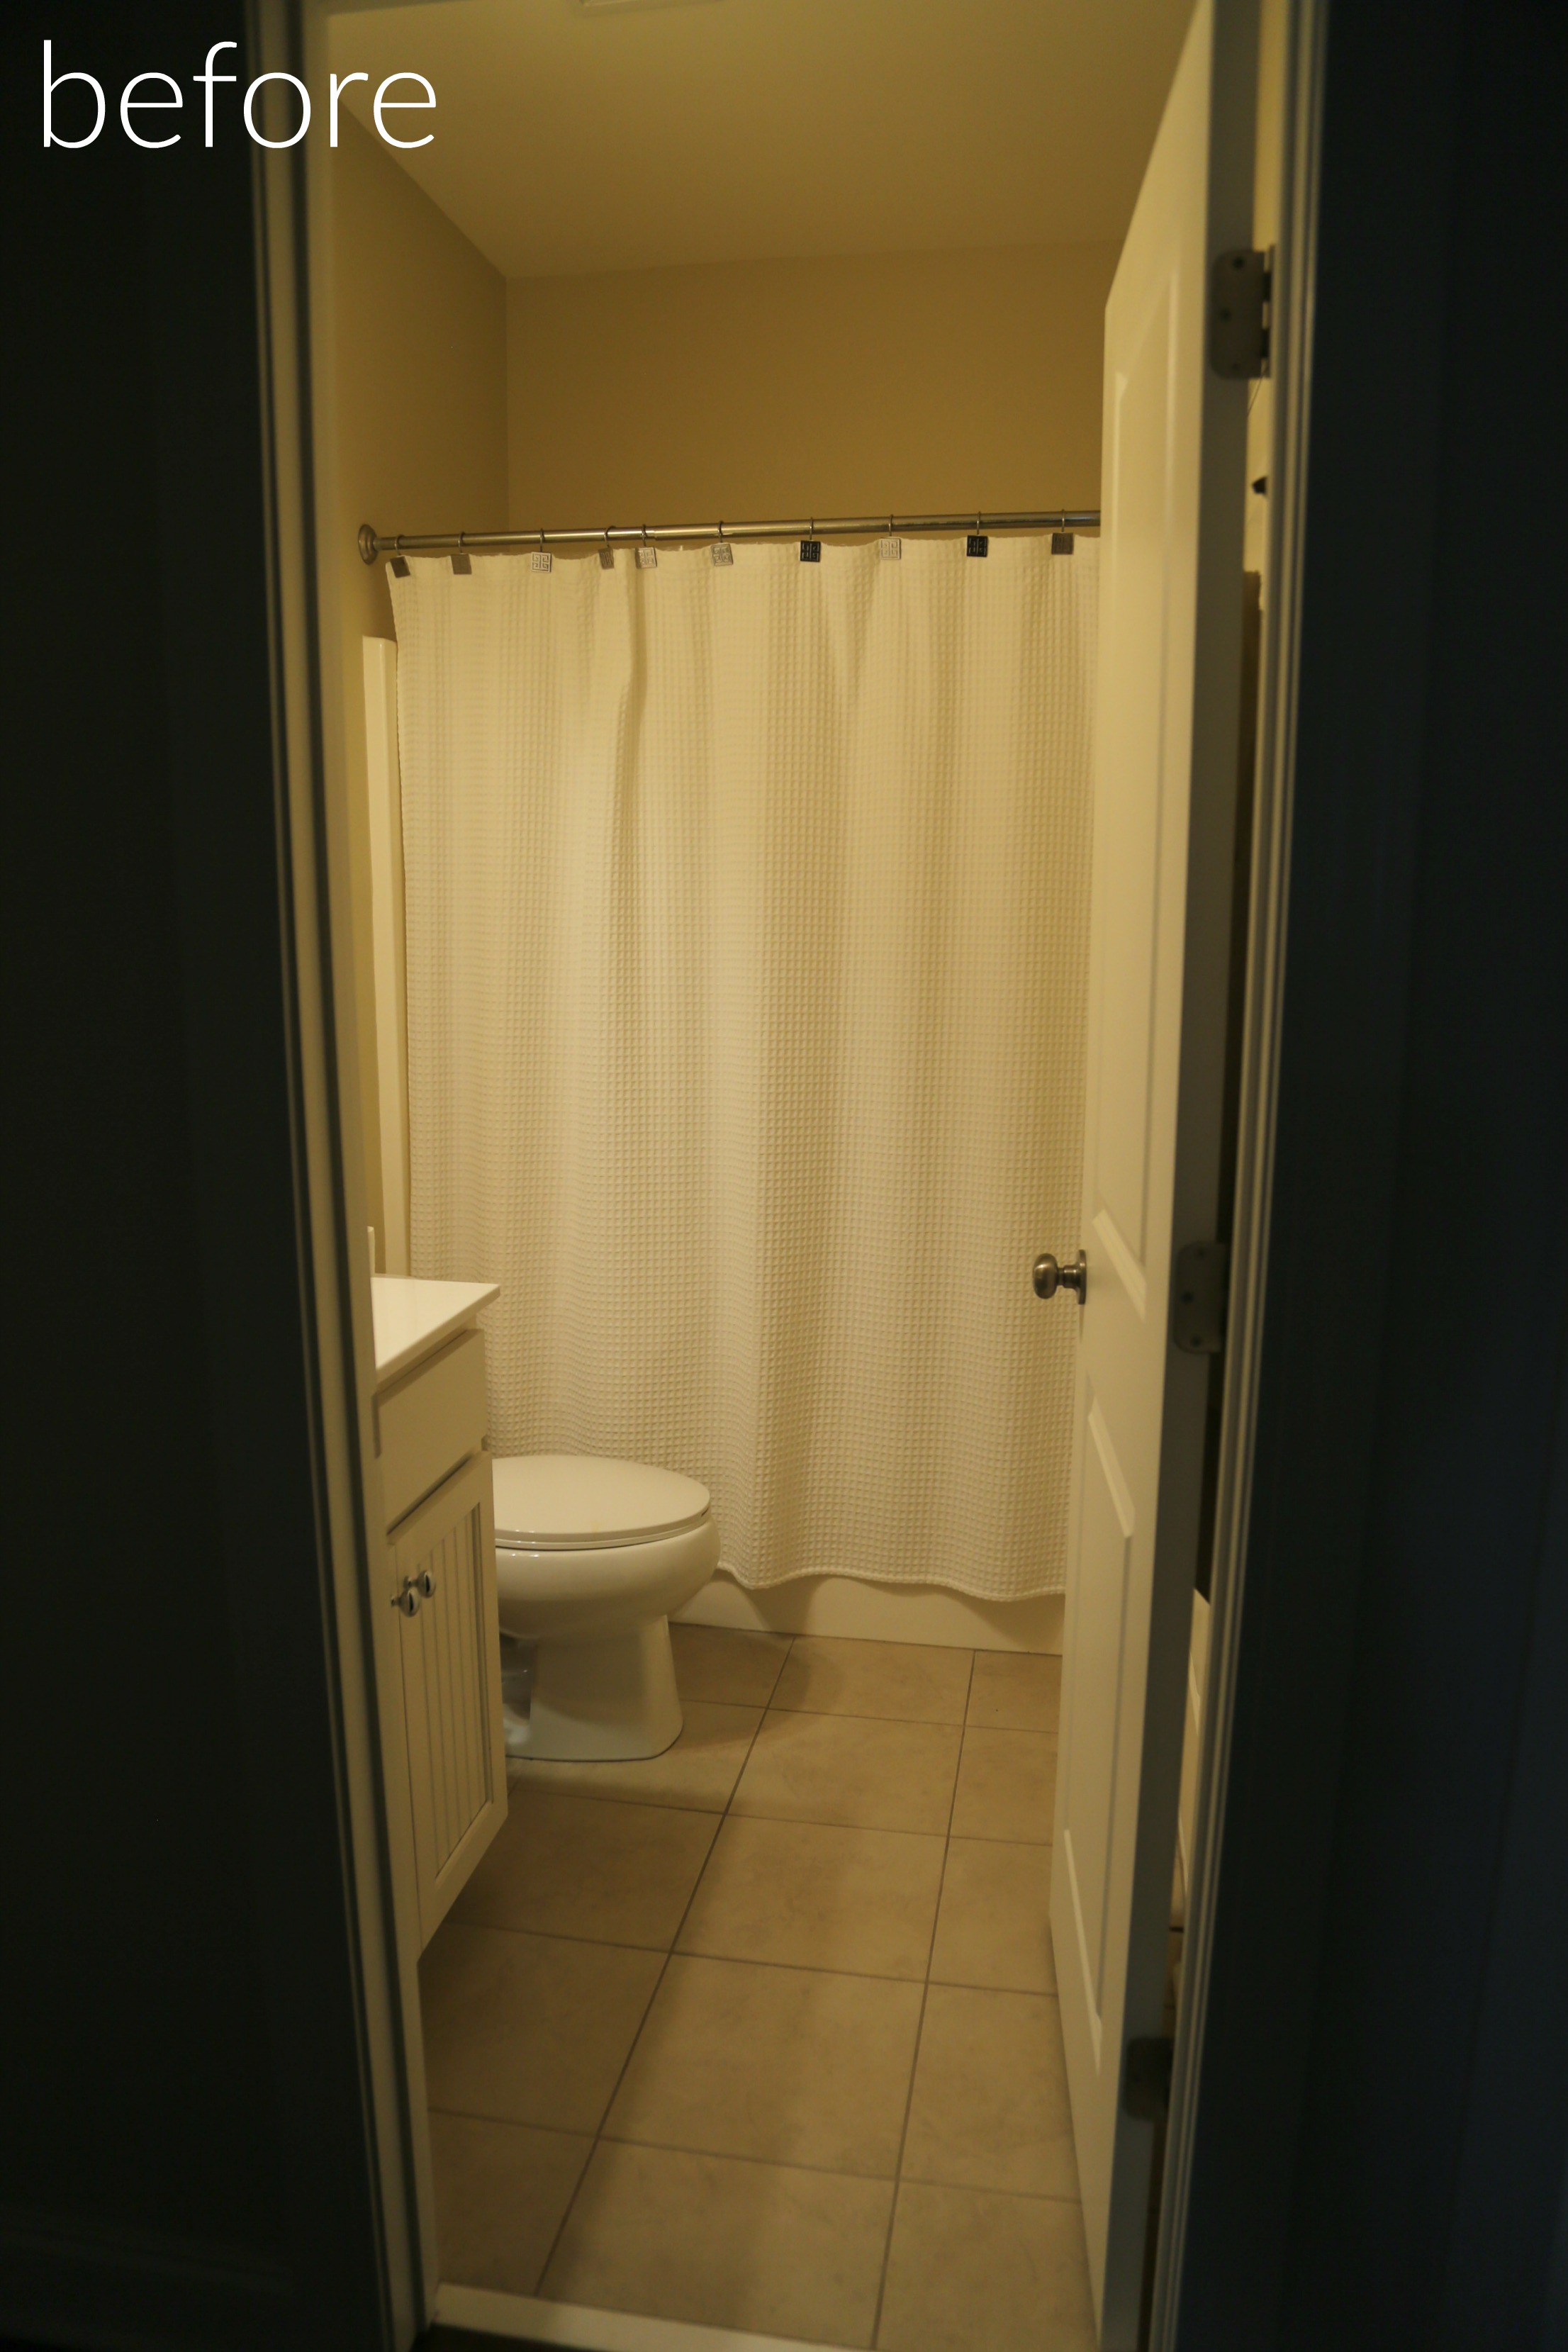 This Small Bathroom Is Connected To The Largest Extra Bedroom In The House  (which Is Currently My Teenage Sonu0027s Room). Hereu0027s A Peak At His Room, ...